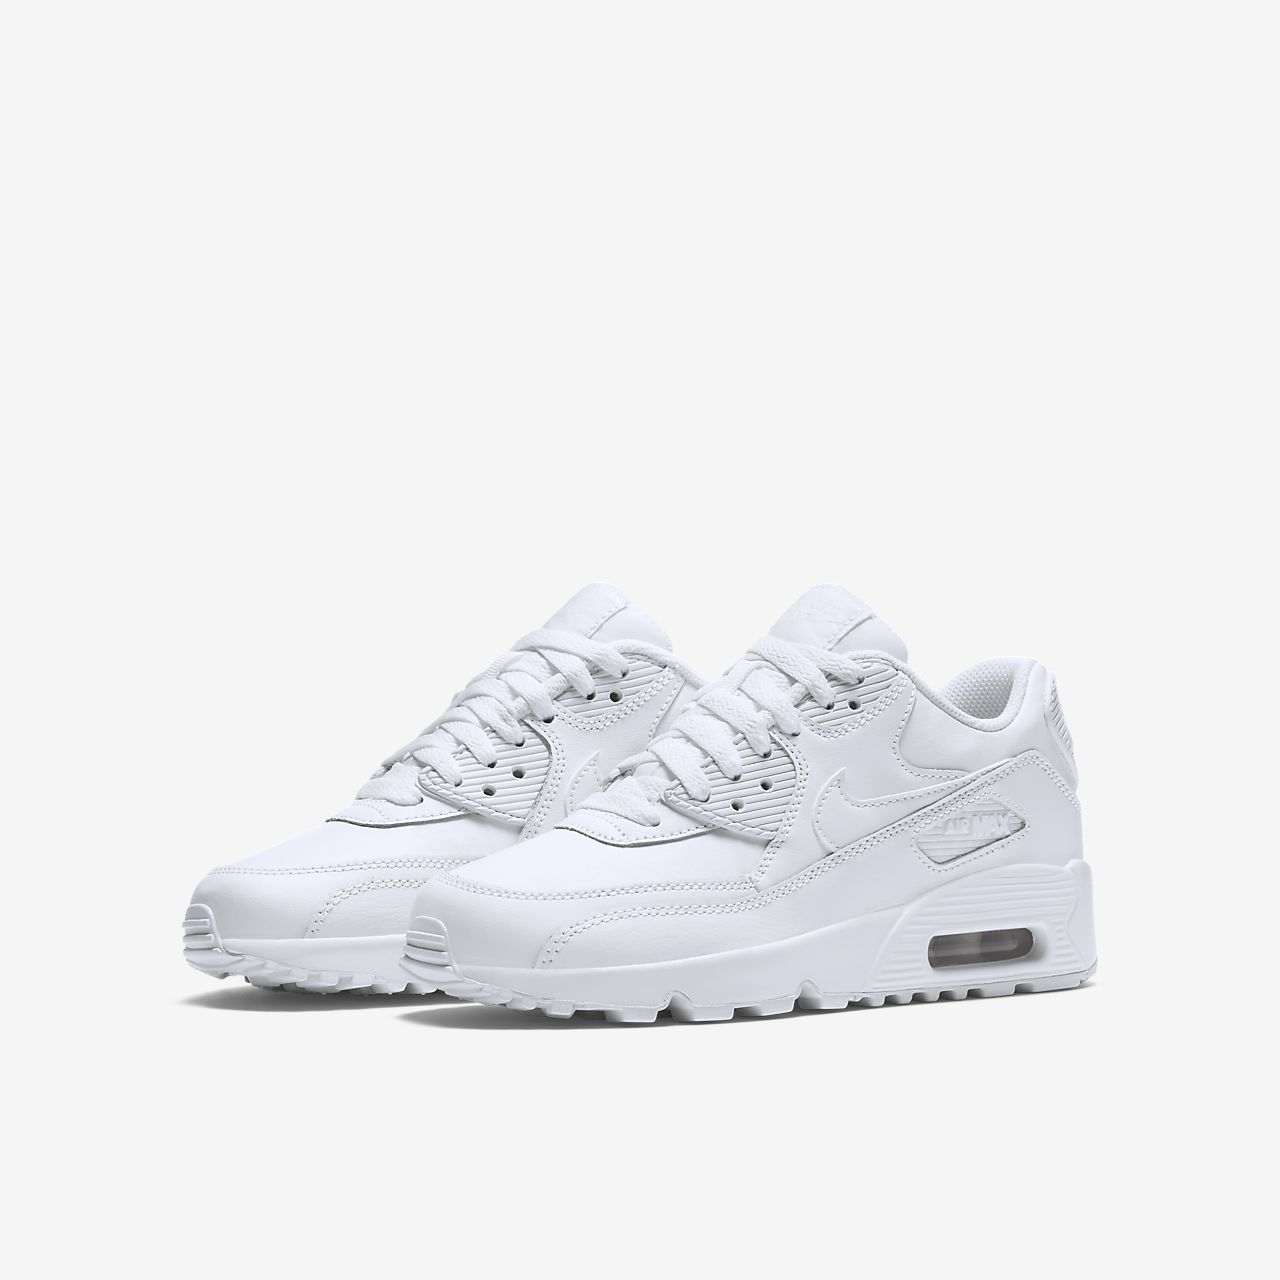 26cd64cdadd Nike Air Max 90 Leather Kinderschoen. Nike.com NL